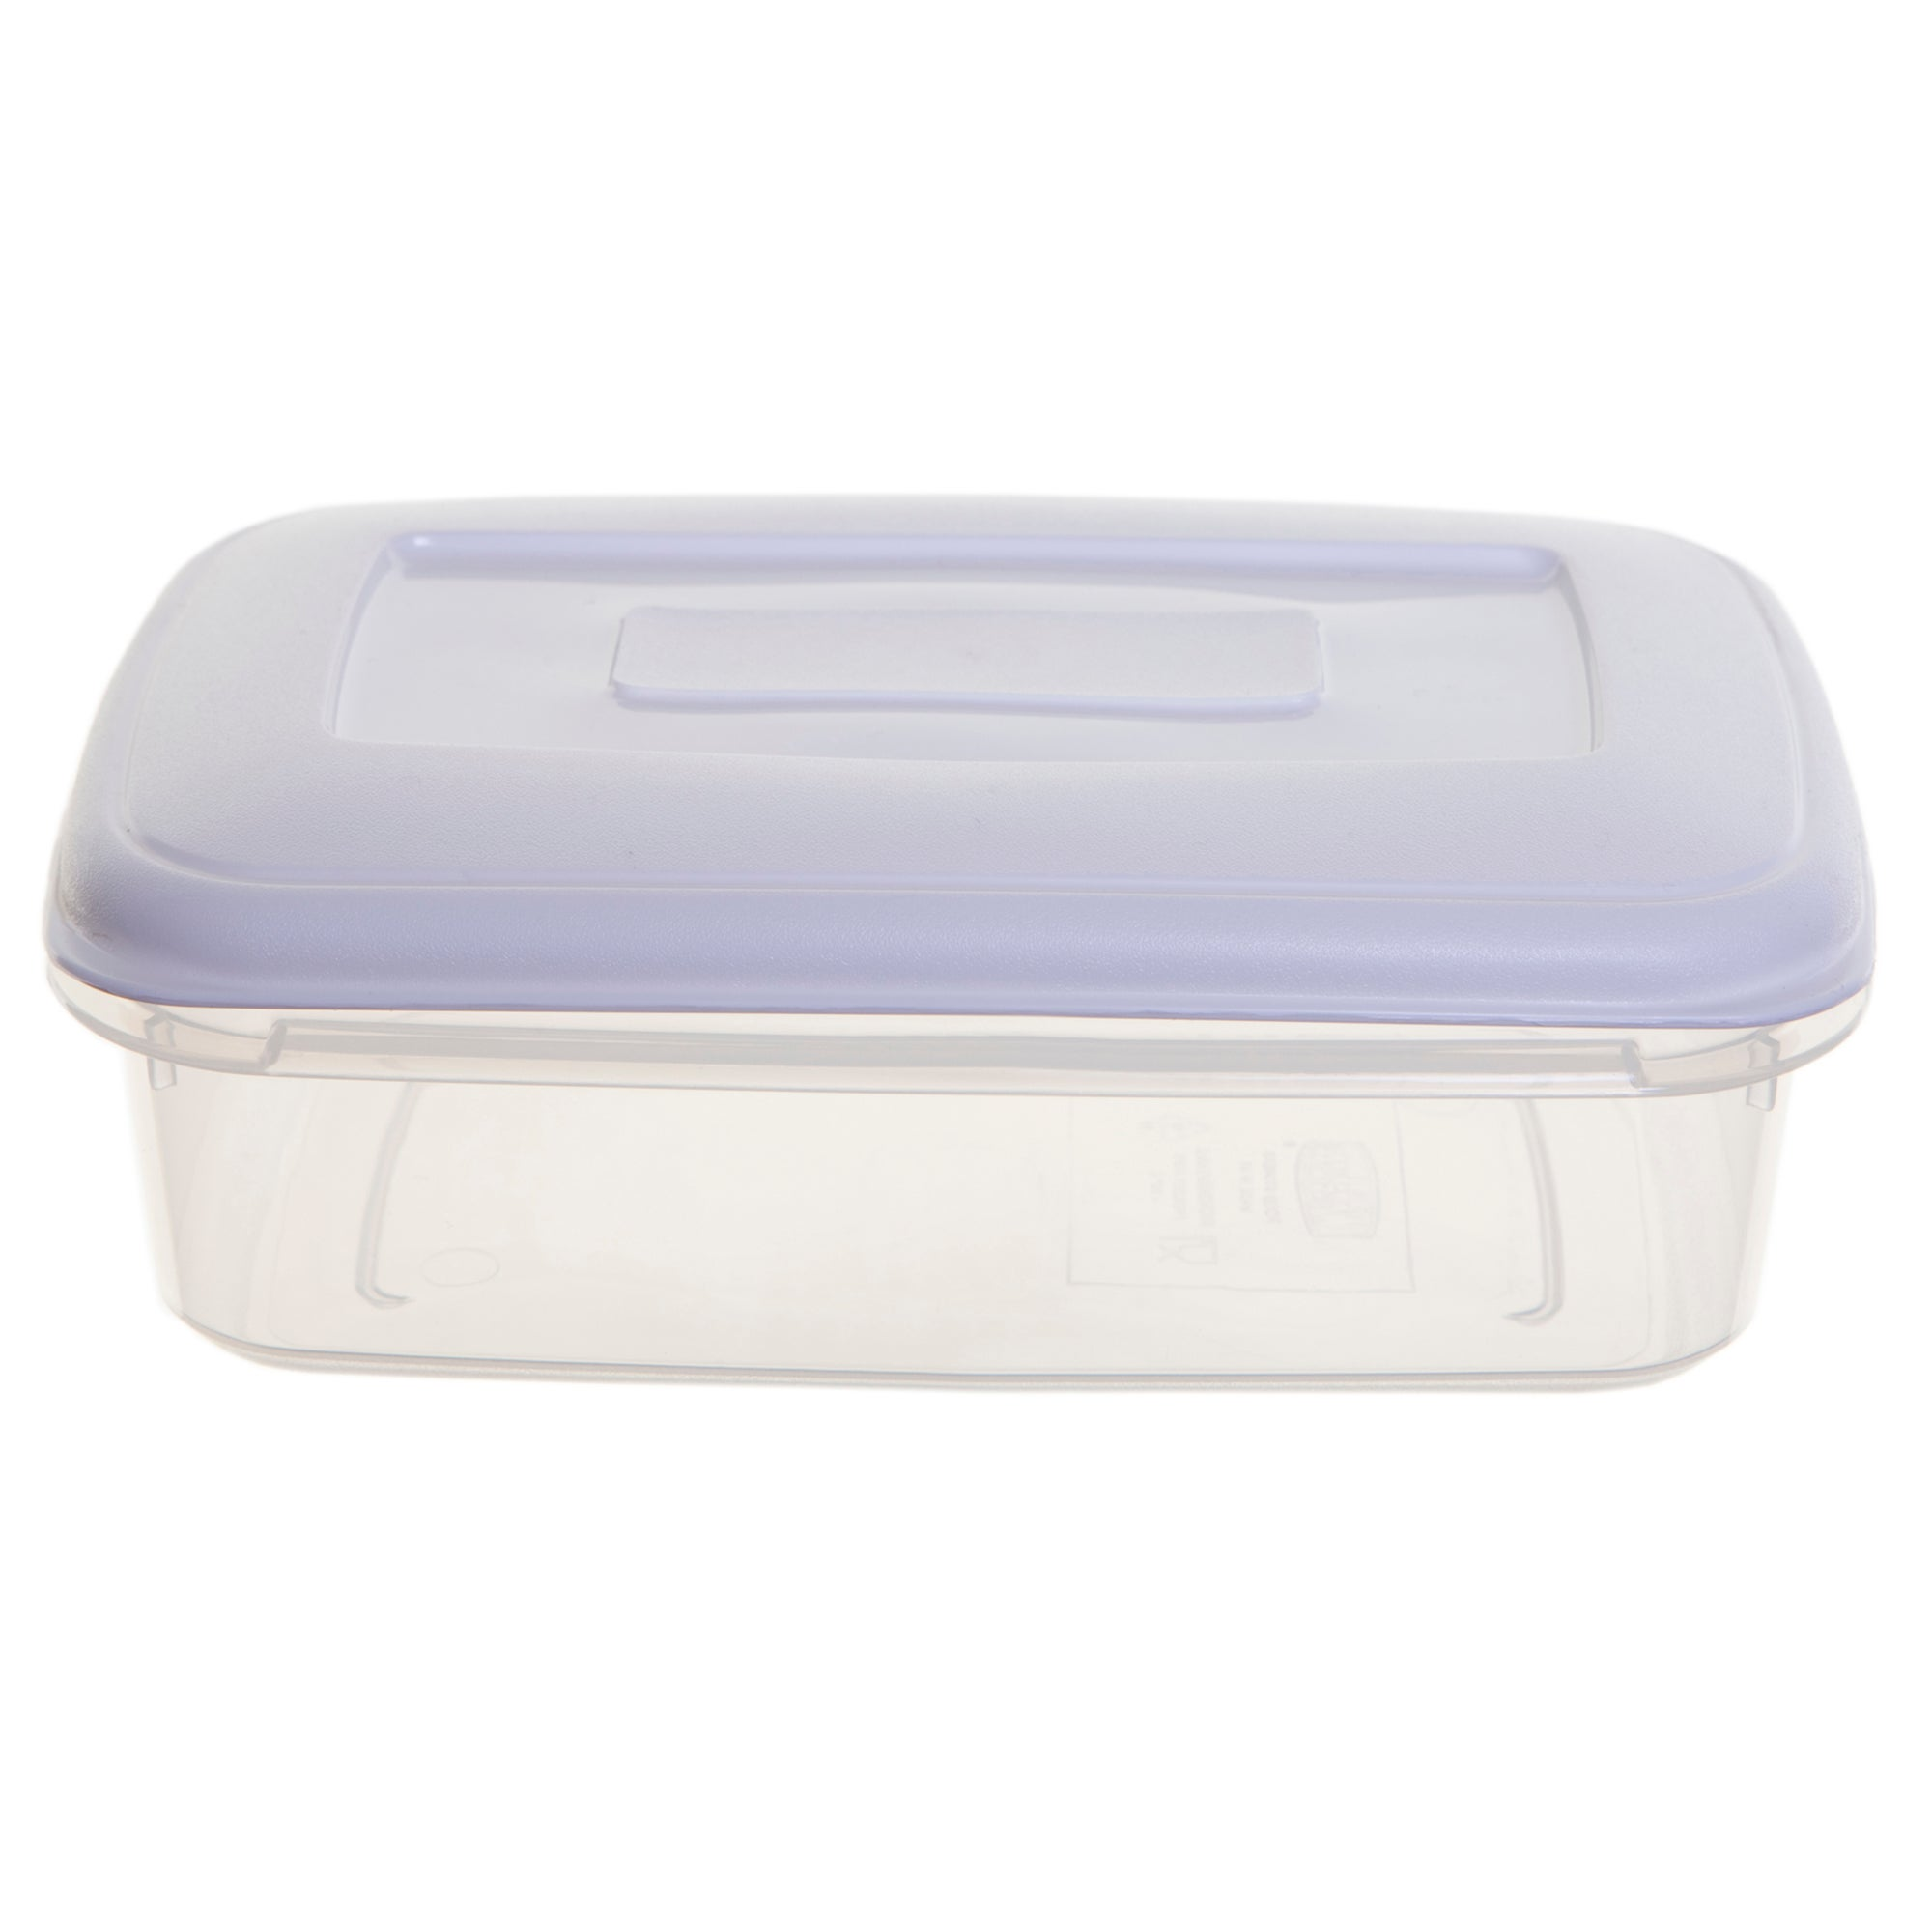 Whitefurze Food Storage Box